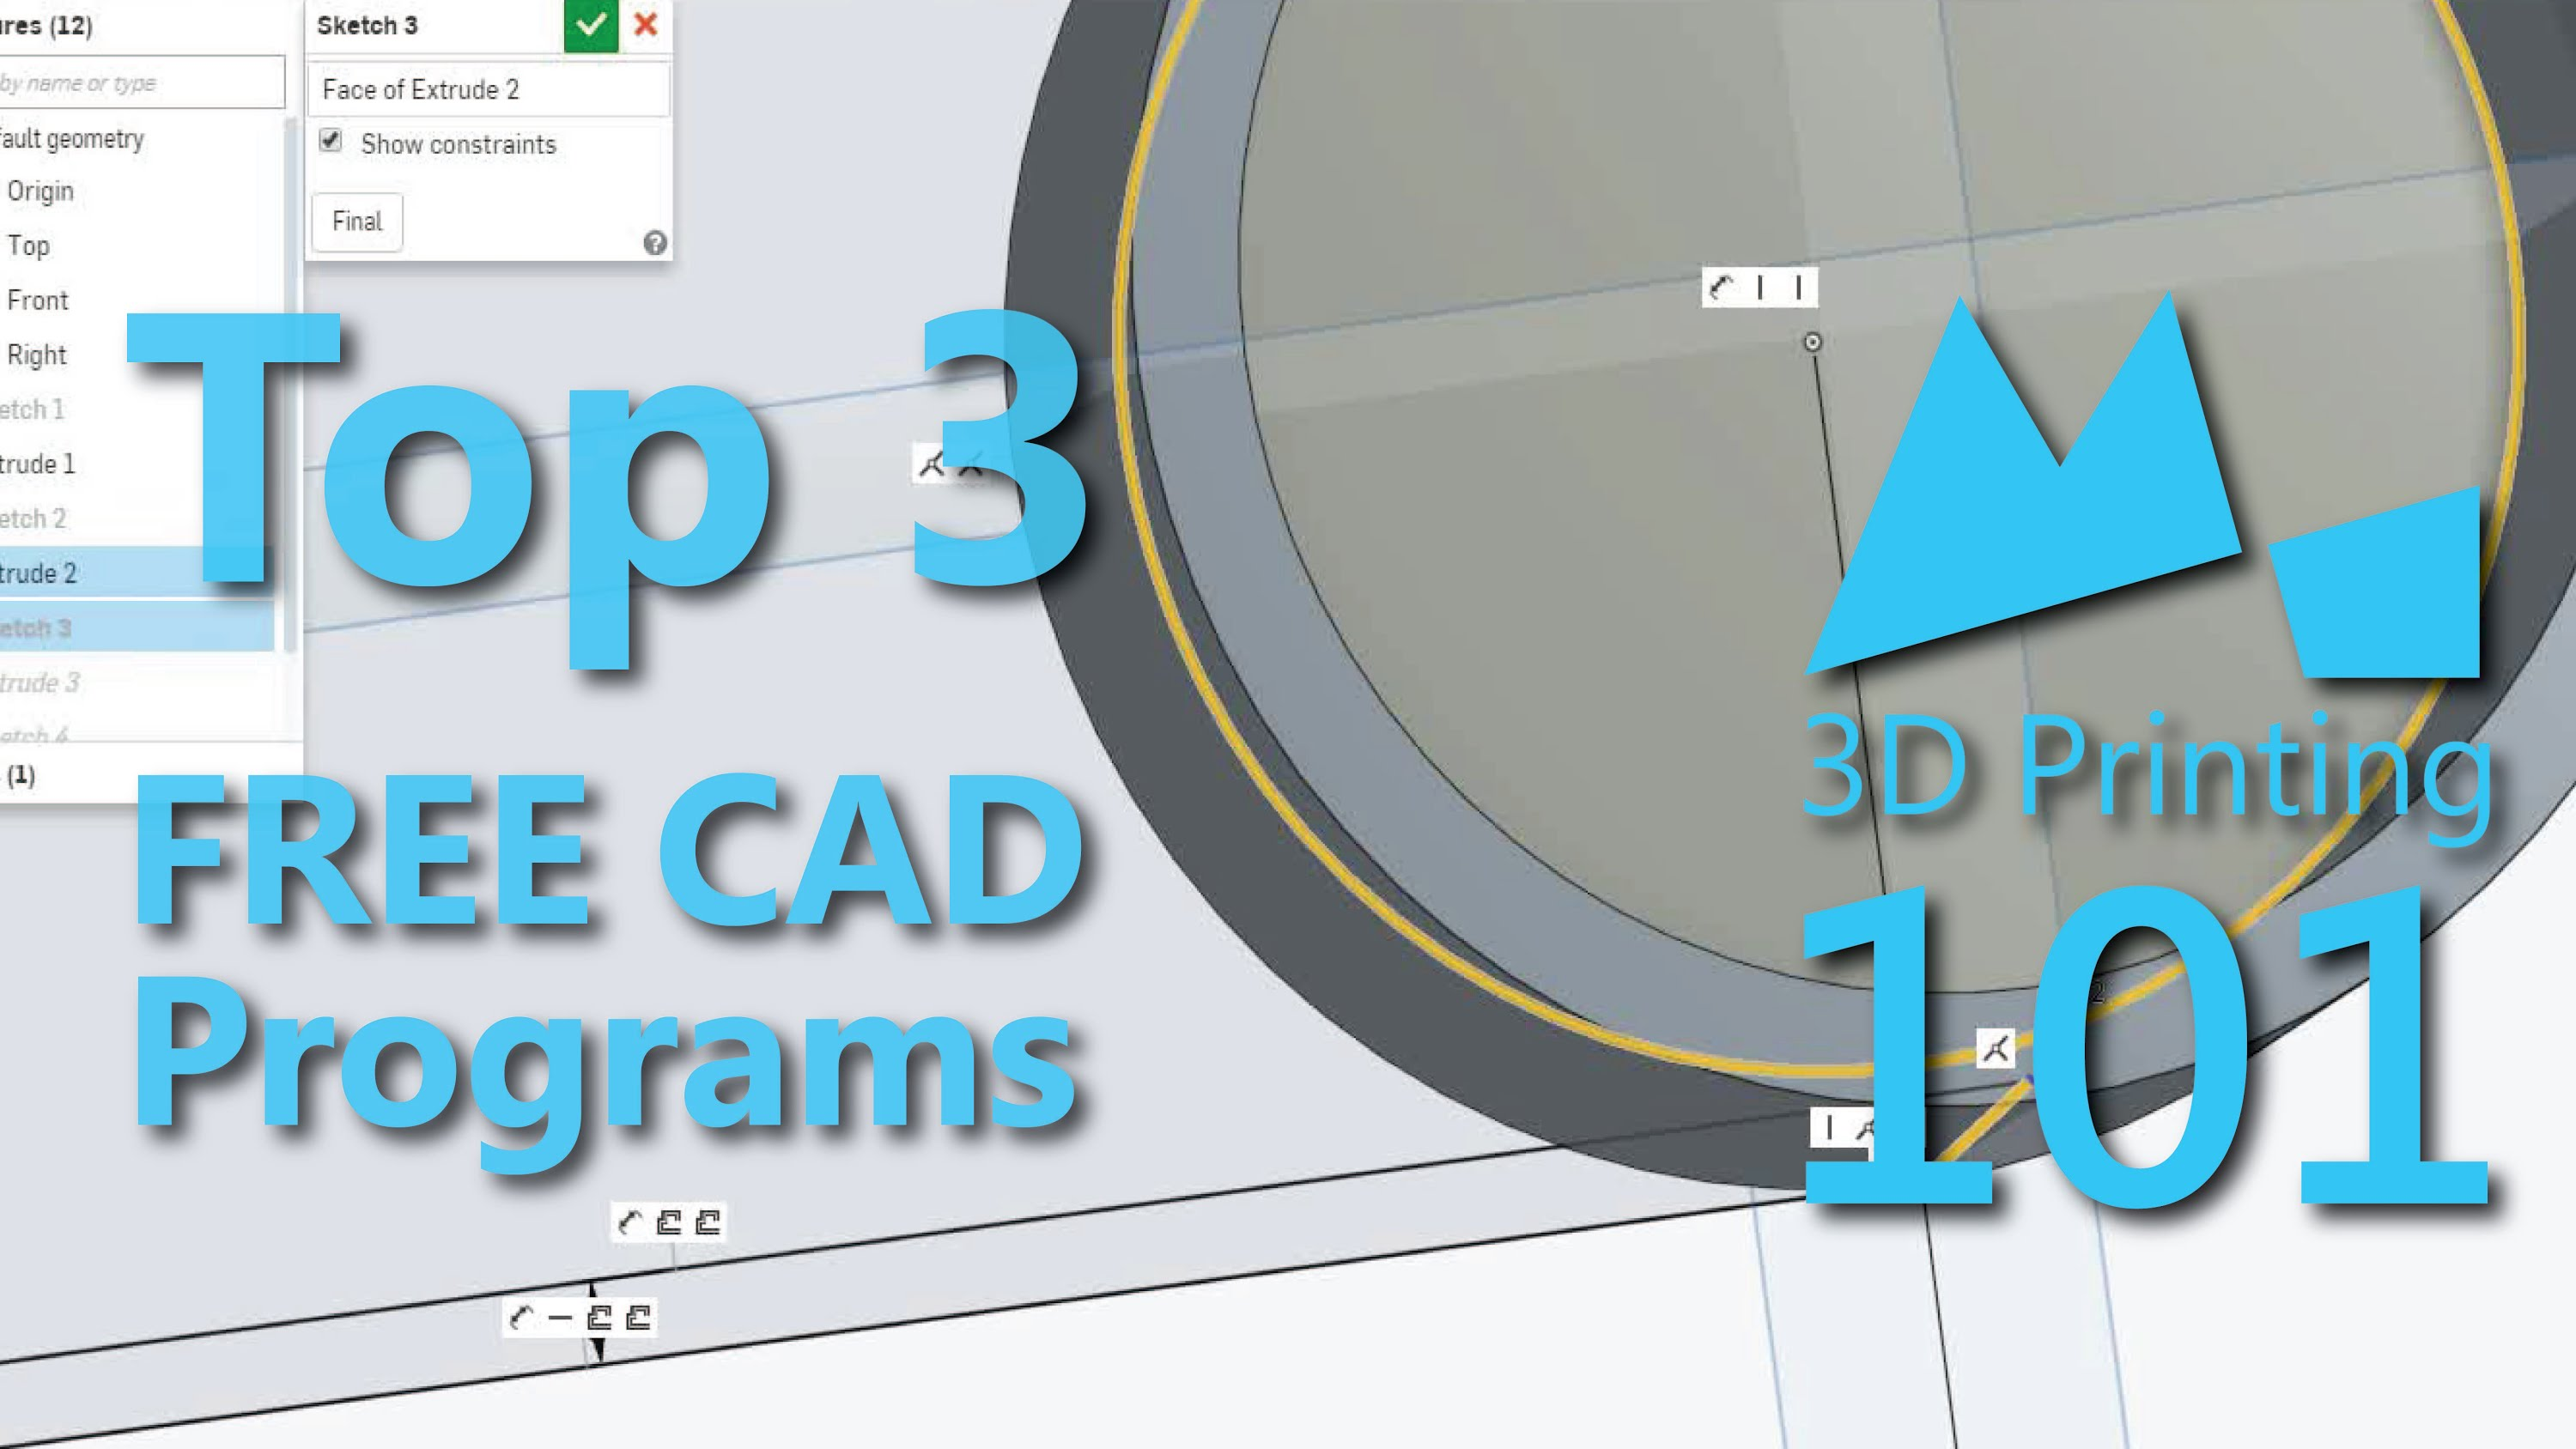 Top 3 free cad for 3dprinting adafruit industries Free cad software for 3d printing